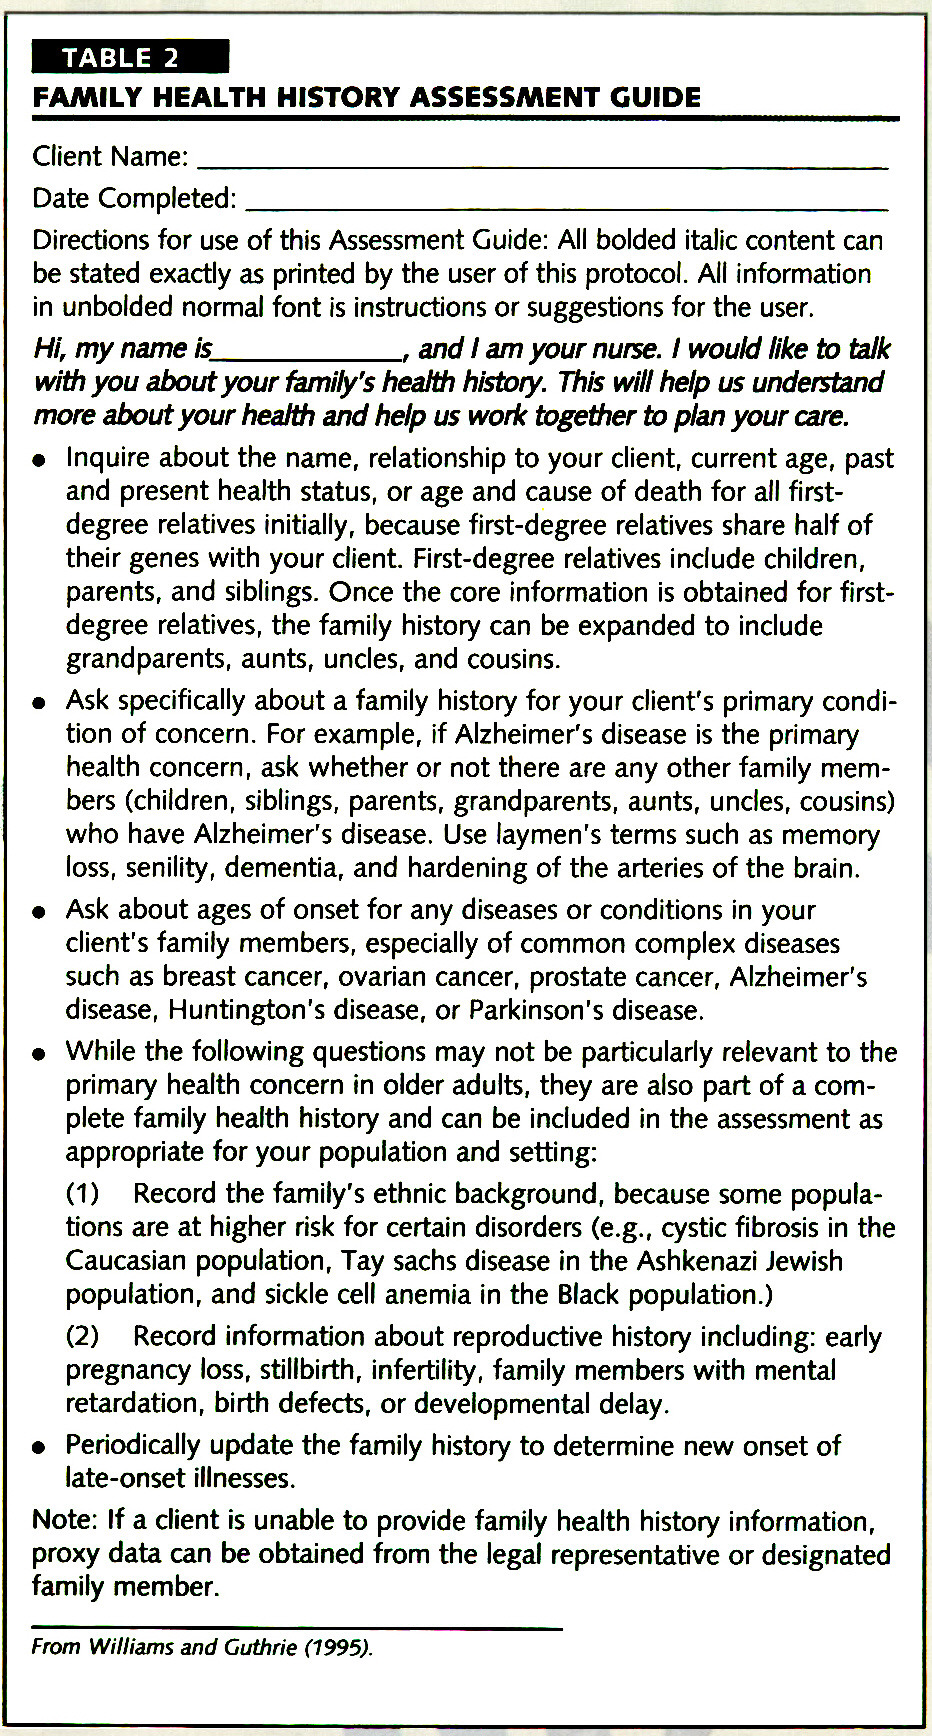 TABLE 2FAMILY HEALTH HISTORY ASSESSMENT GUIDE